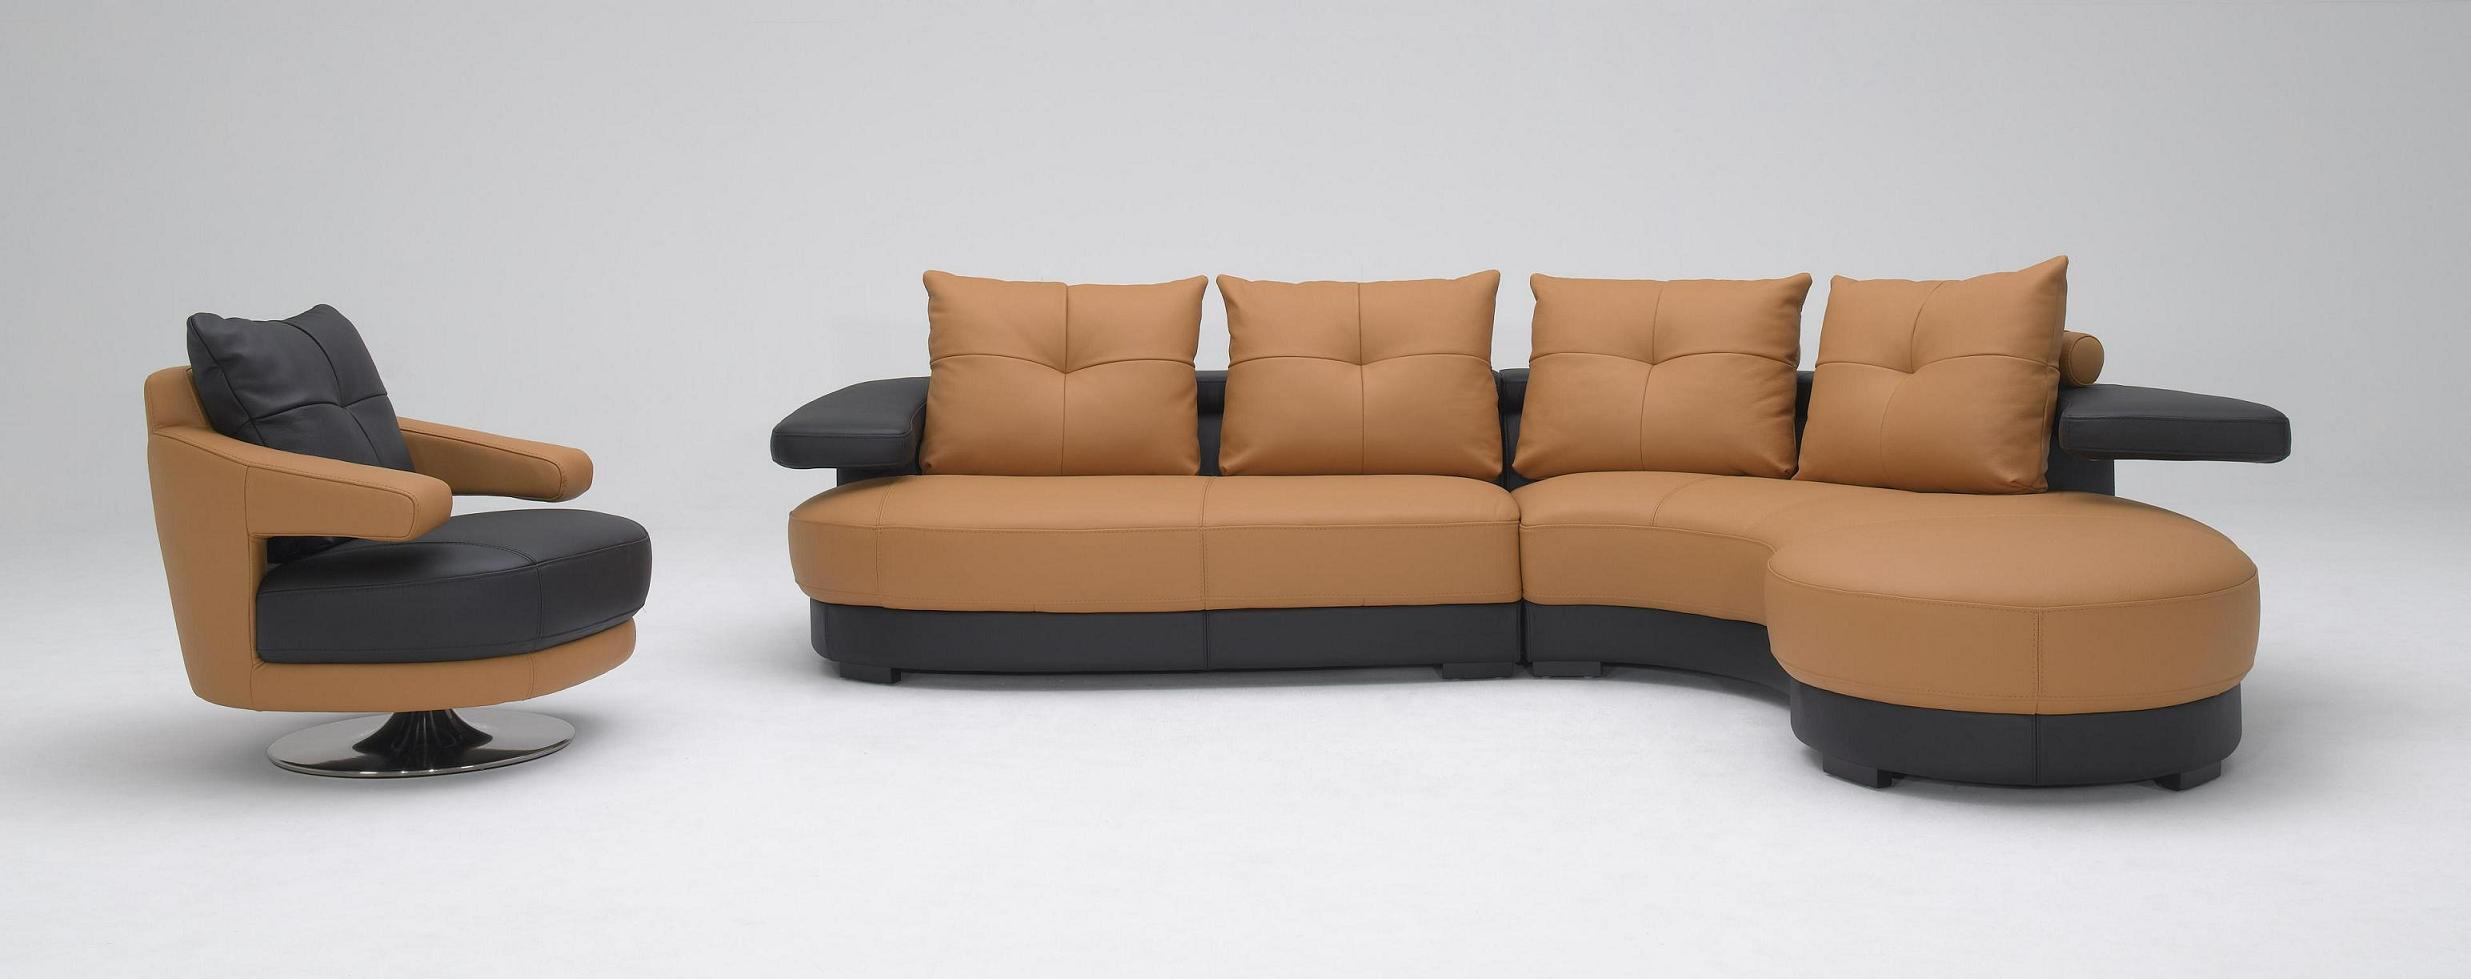 t57b ultra modern leather sectional sofa sofas definition kk899 black and white